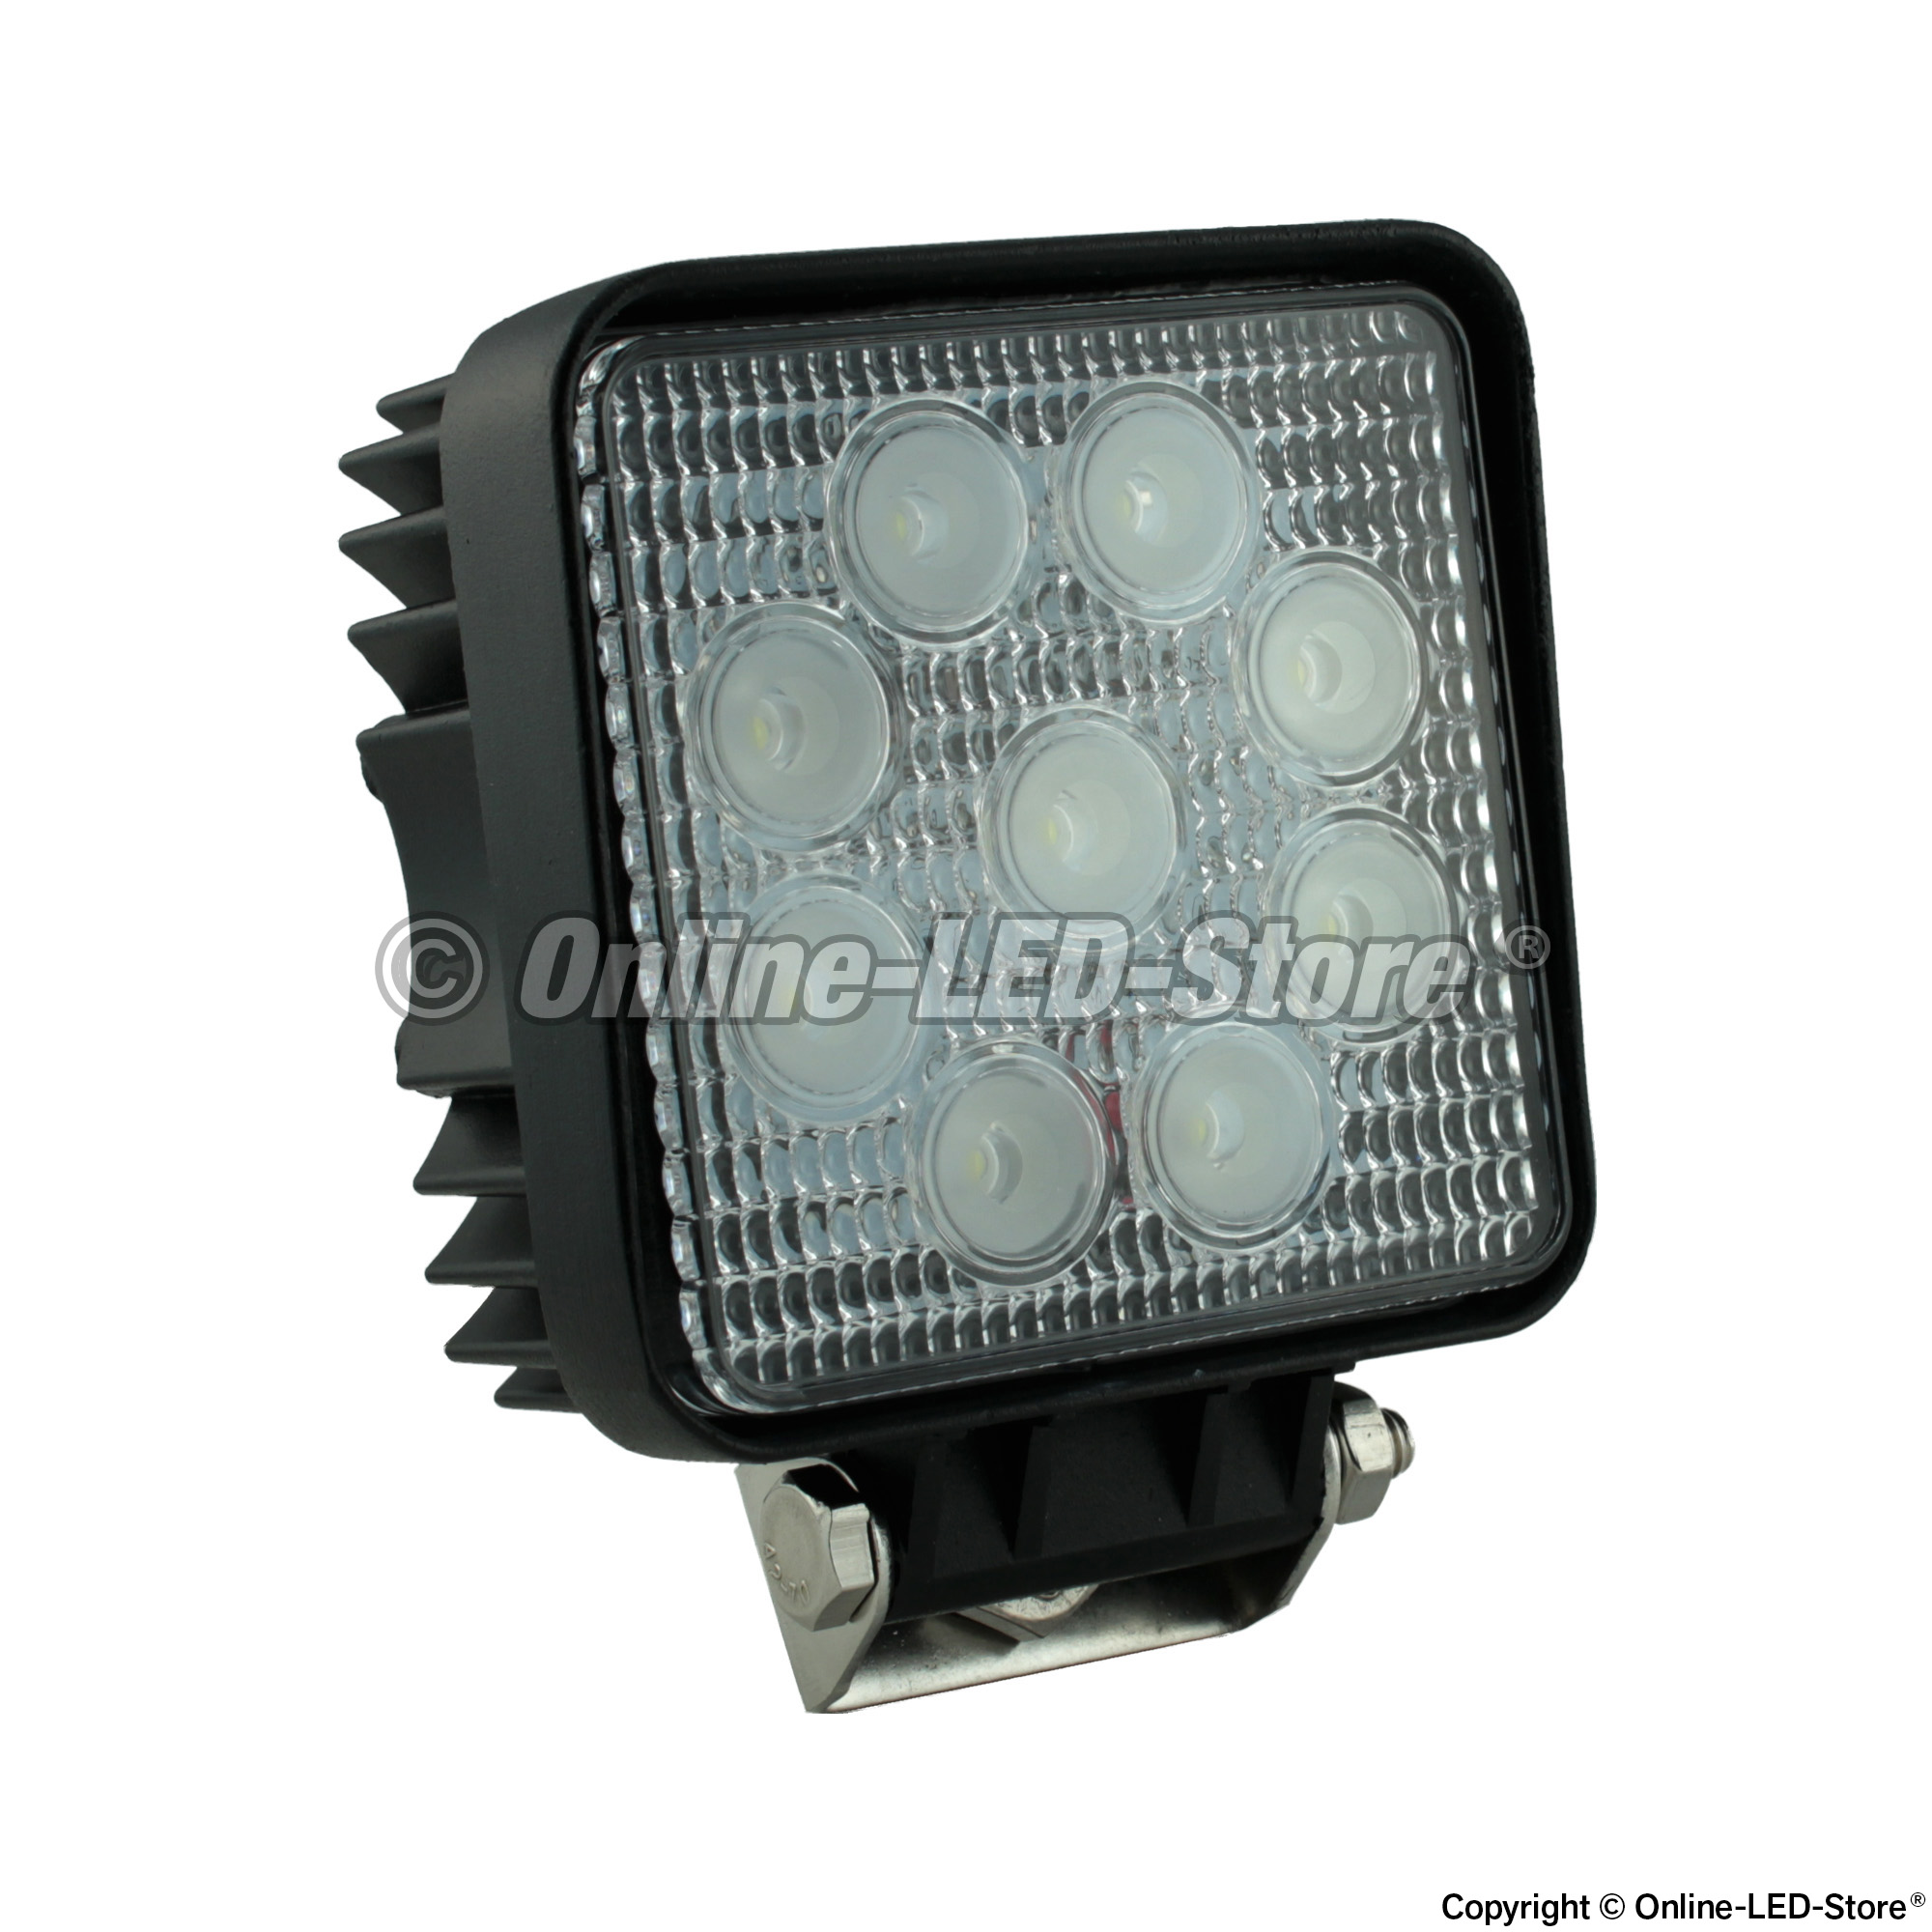 Utility work lights for commercial construction vehicles square 27w led utility work light flood aloadofball Images